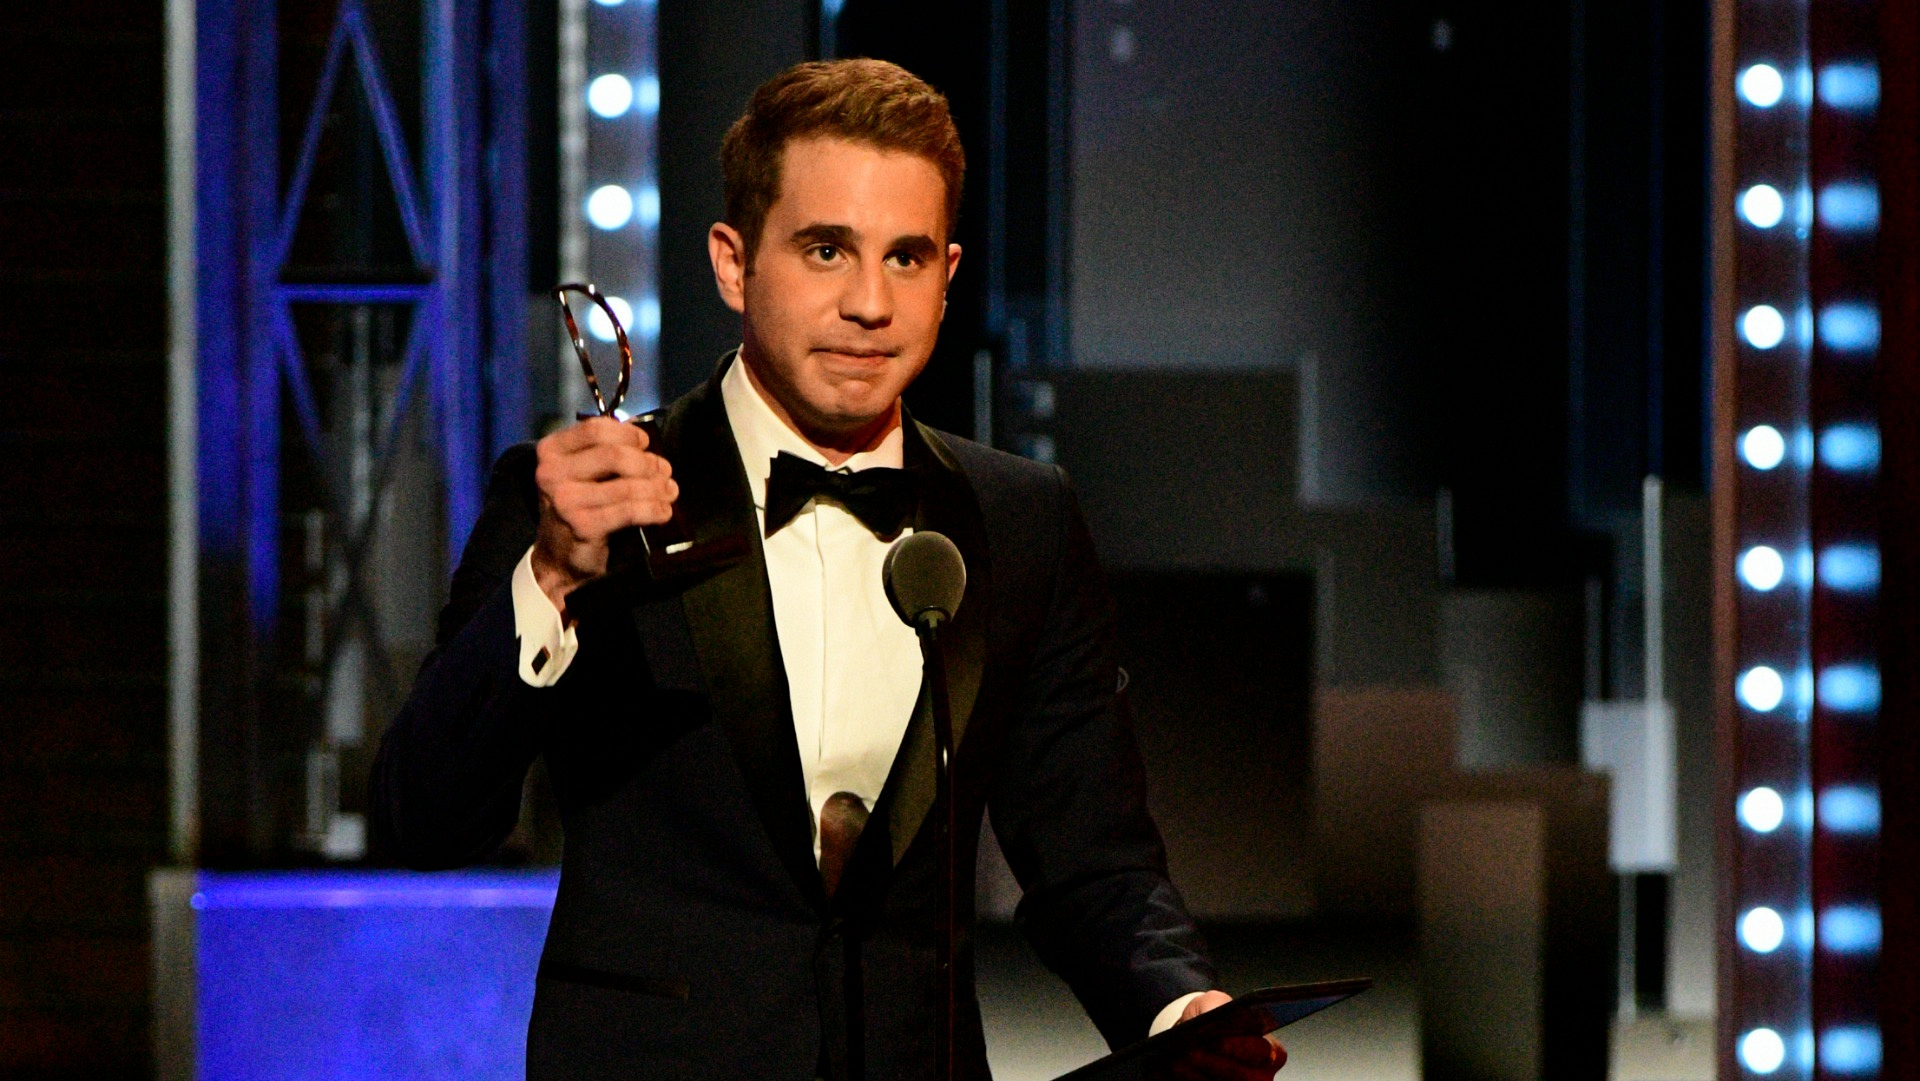 Ben Platt wins the 71st Annual Tony Award for Best Actor in a Leading Role in a Musical